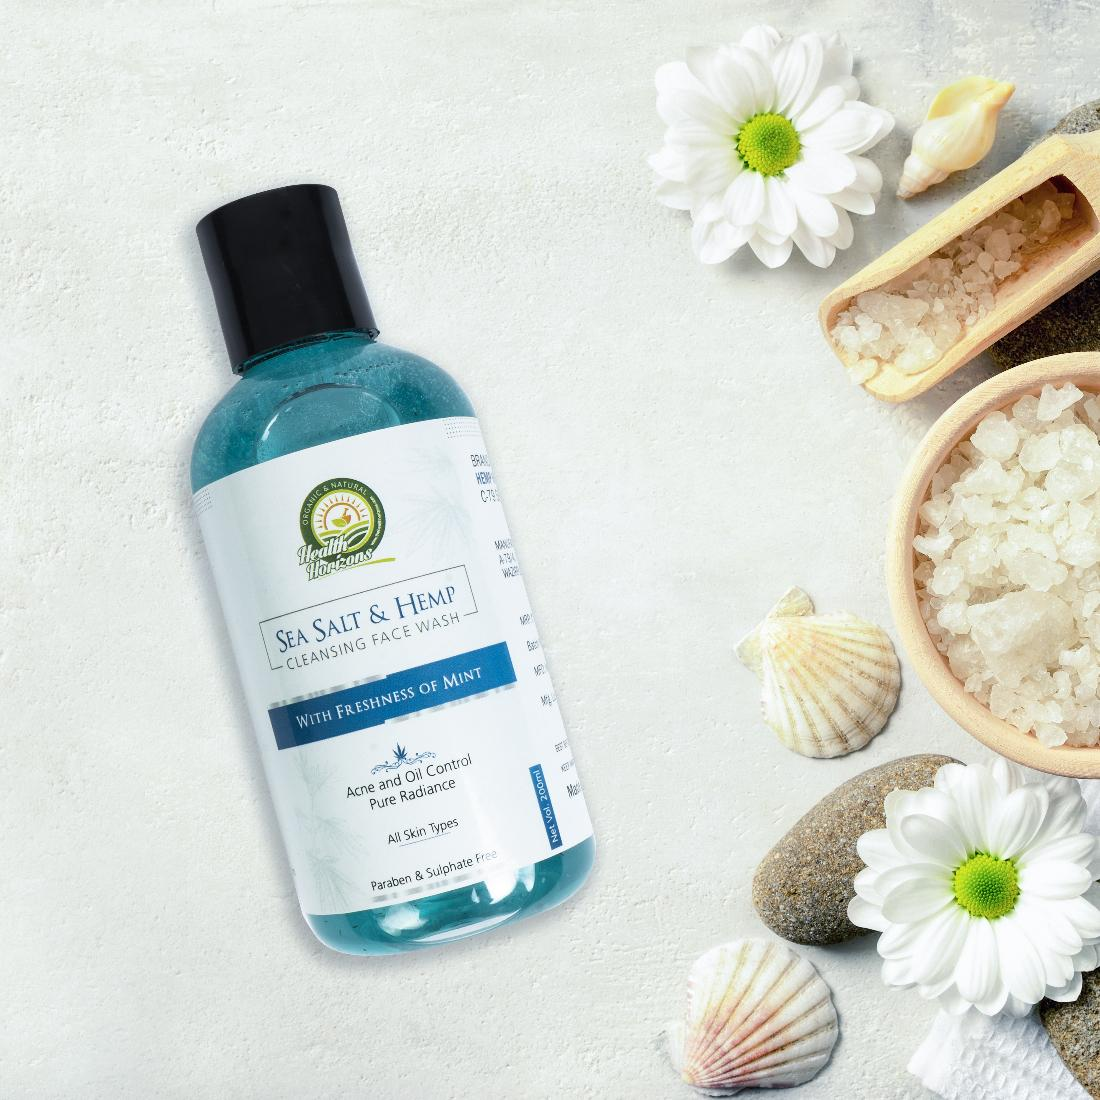 Hemp seasalt face wash